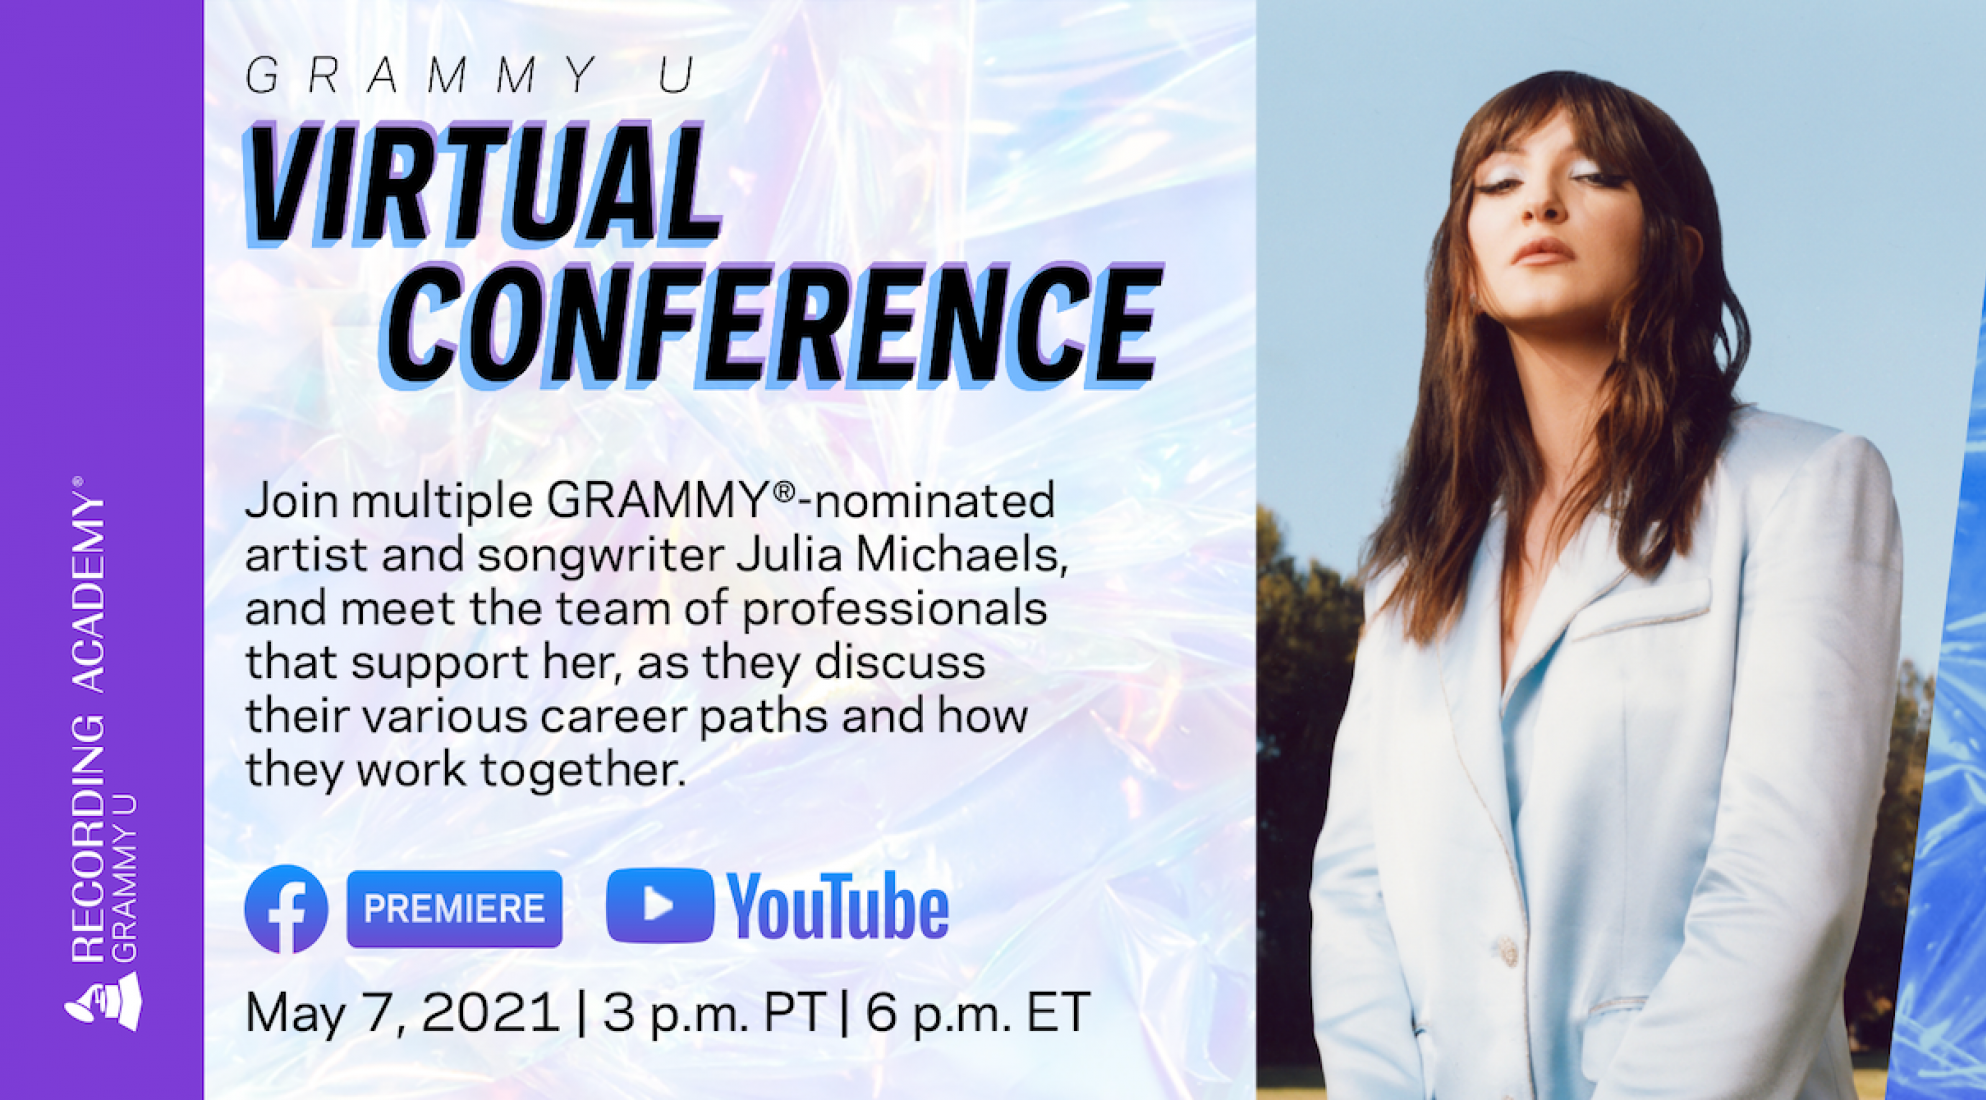 Artwork for 2021 GRAMMY U Virtual Conference Featuring Julia Michaels